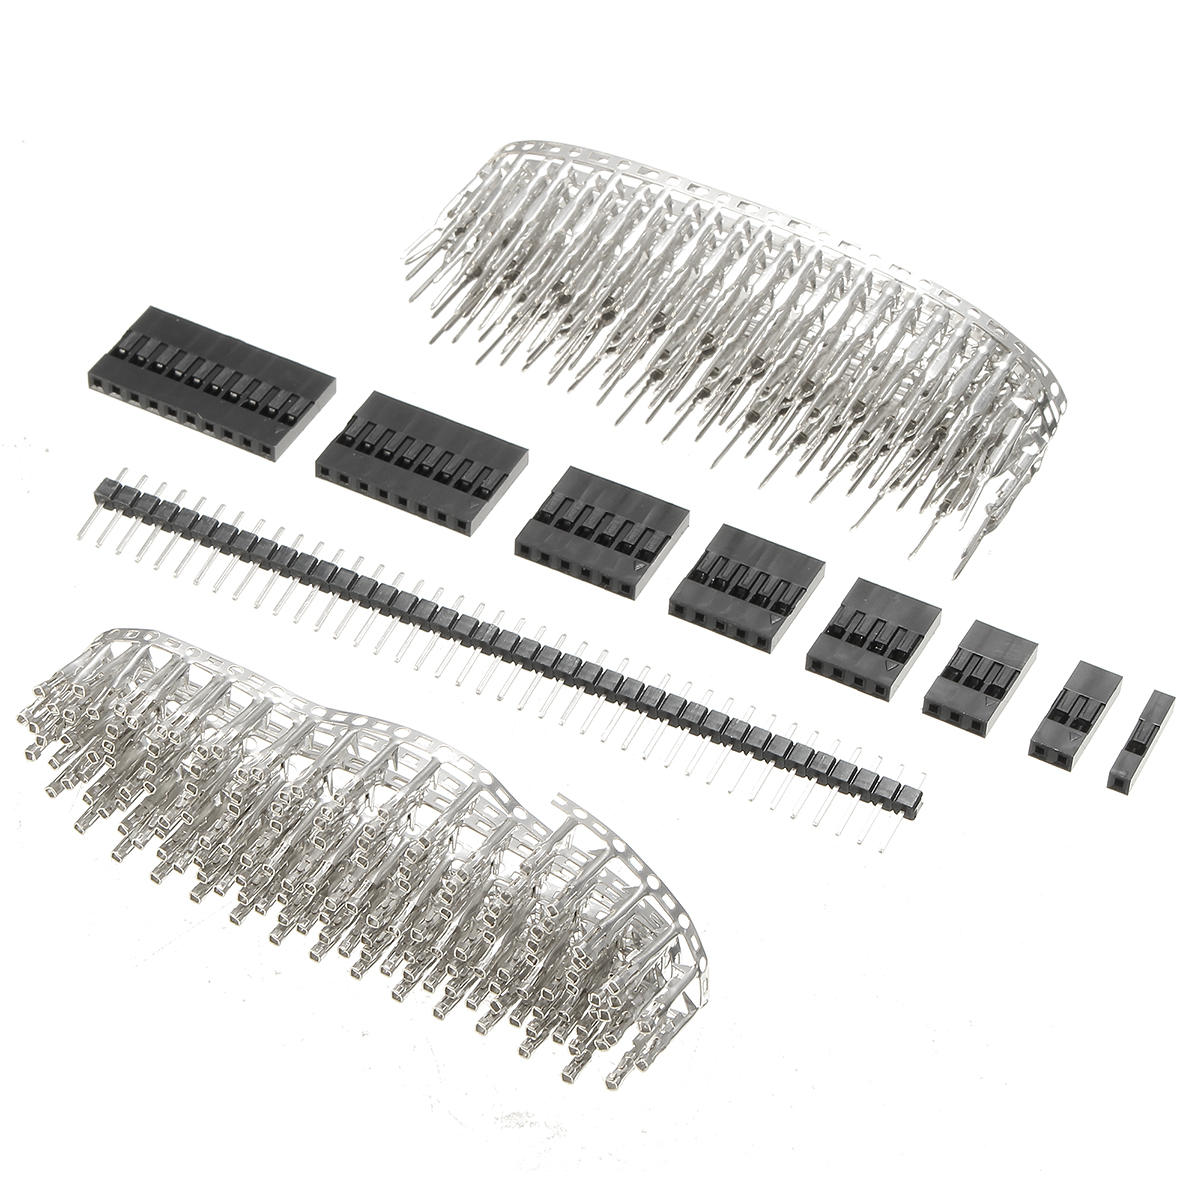 geekcreit® 1450pcs 2.54mm male female dupont wire jumper